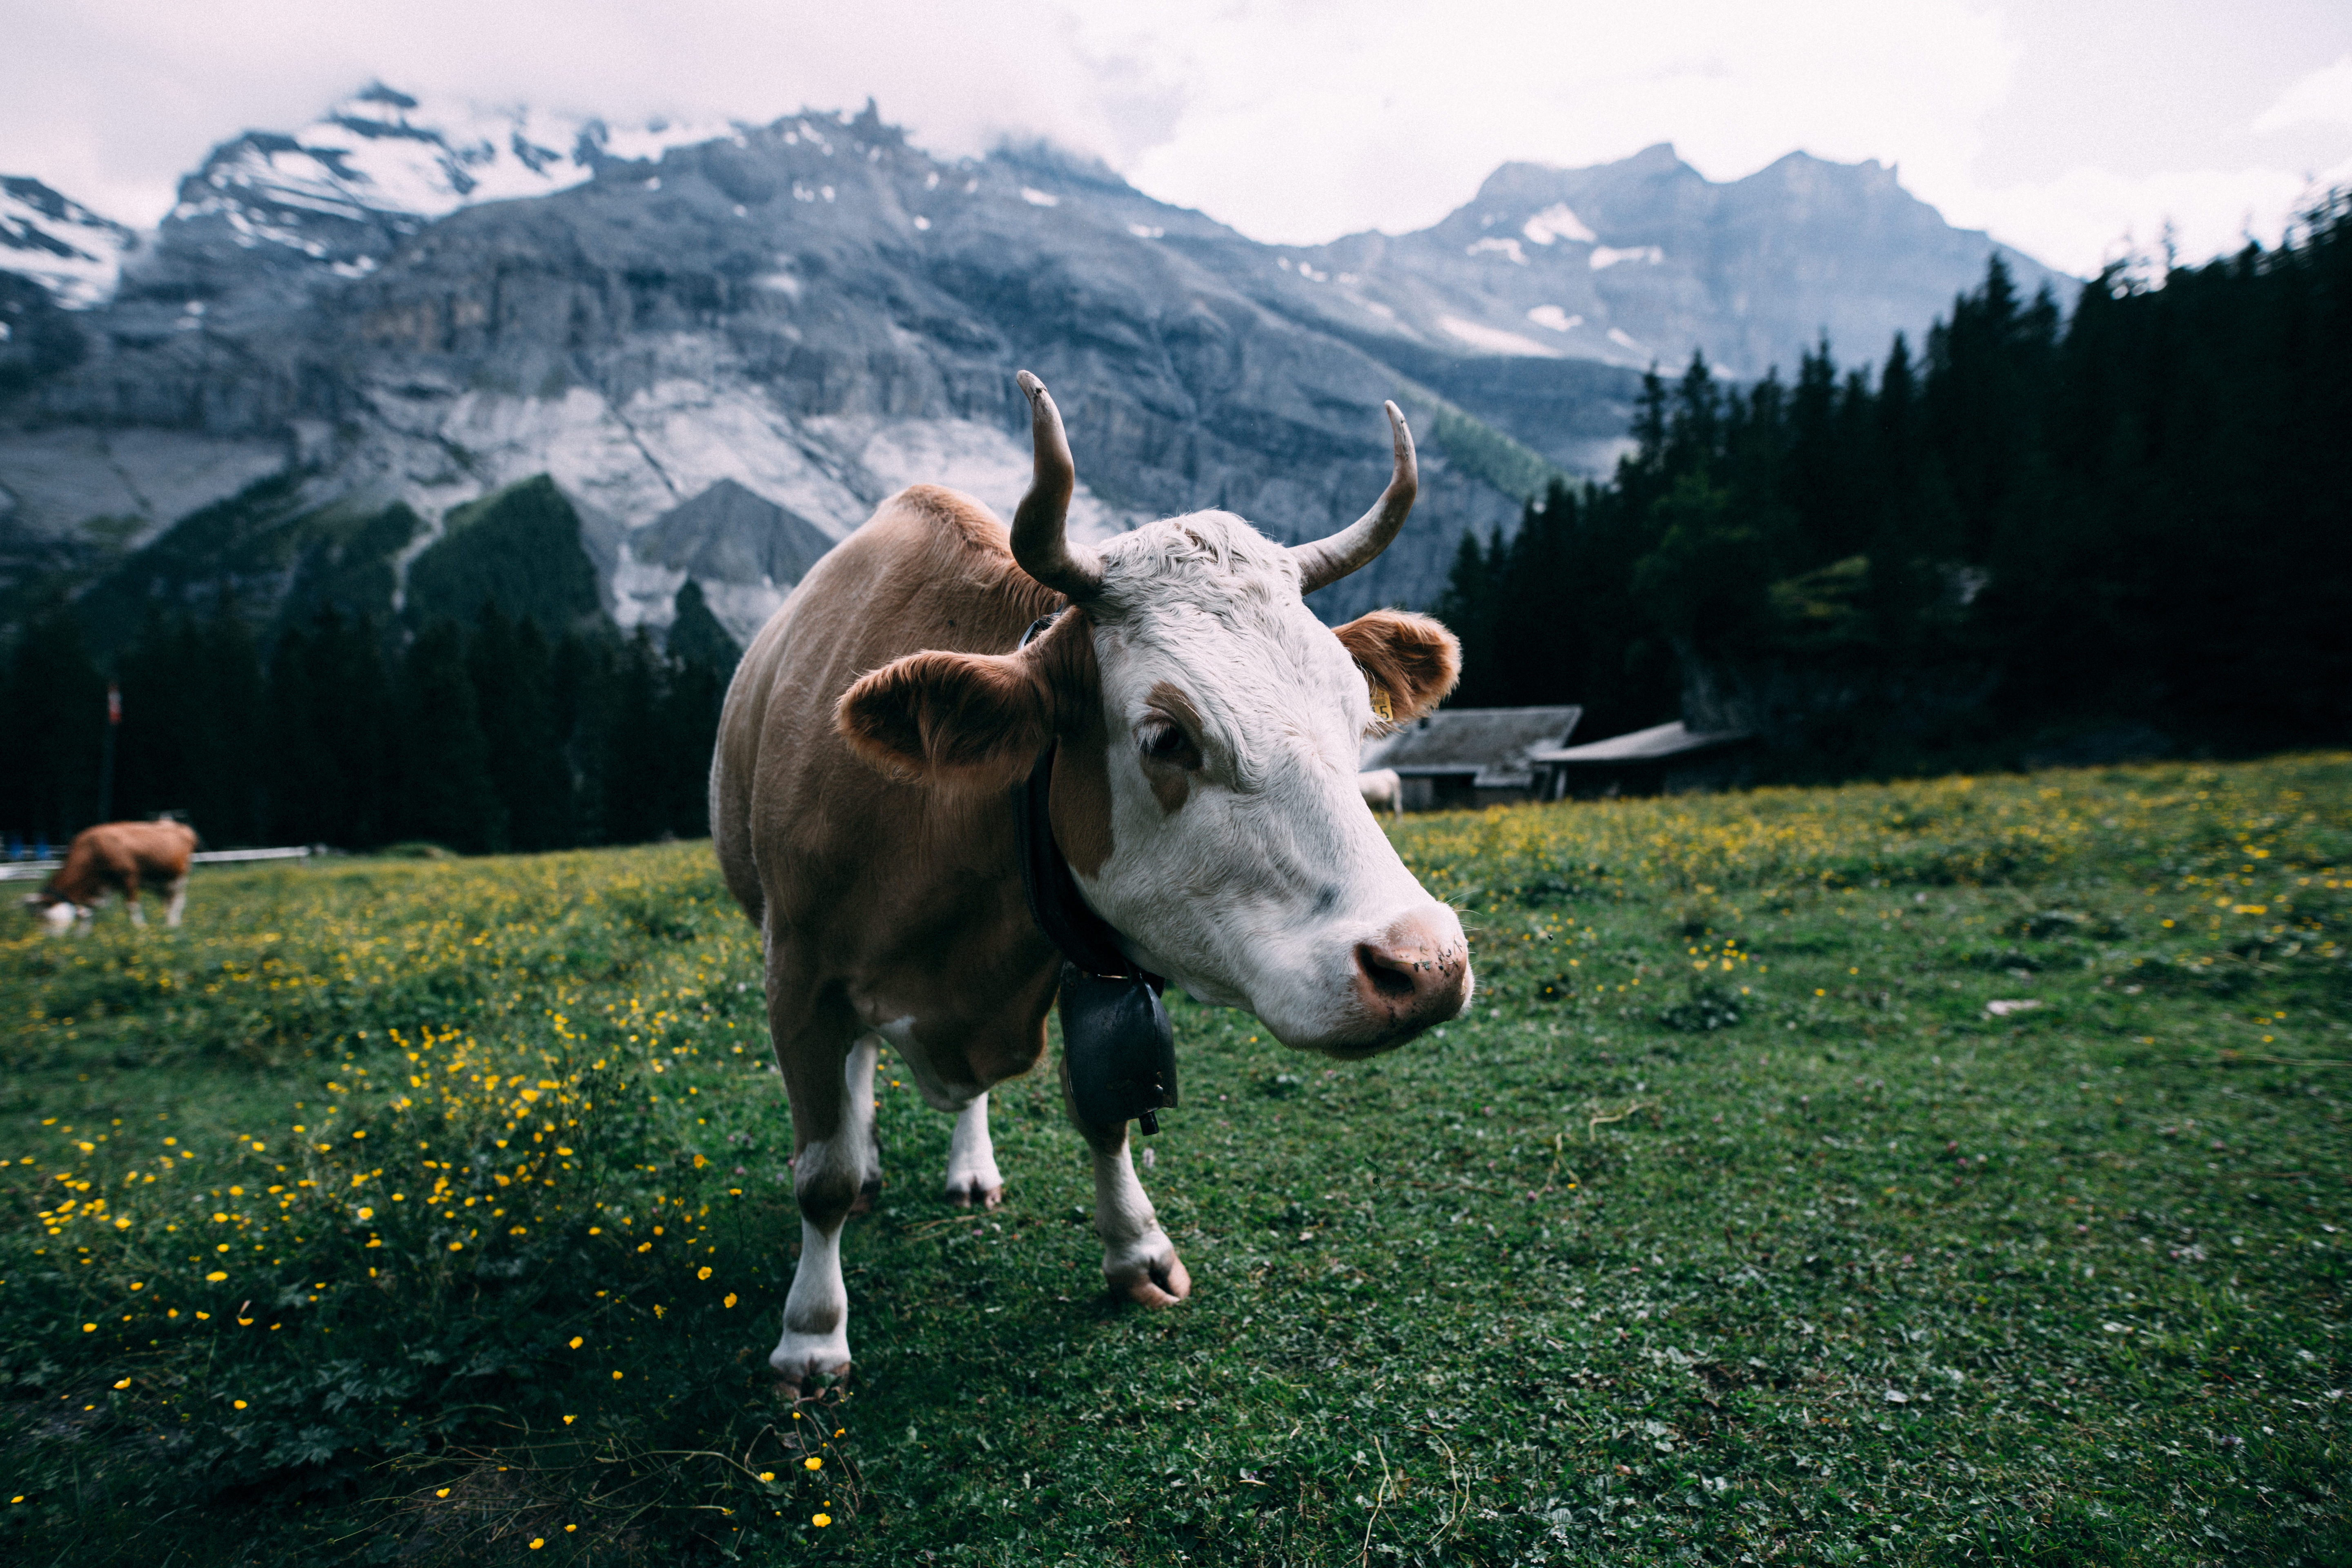 White and Brown Cow Near Mountain during Daytime, Agriculture, Horn, Switzerland, Rural, HQ Photo